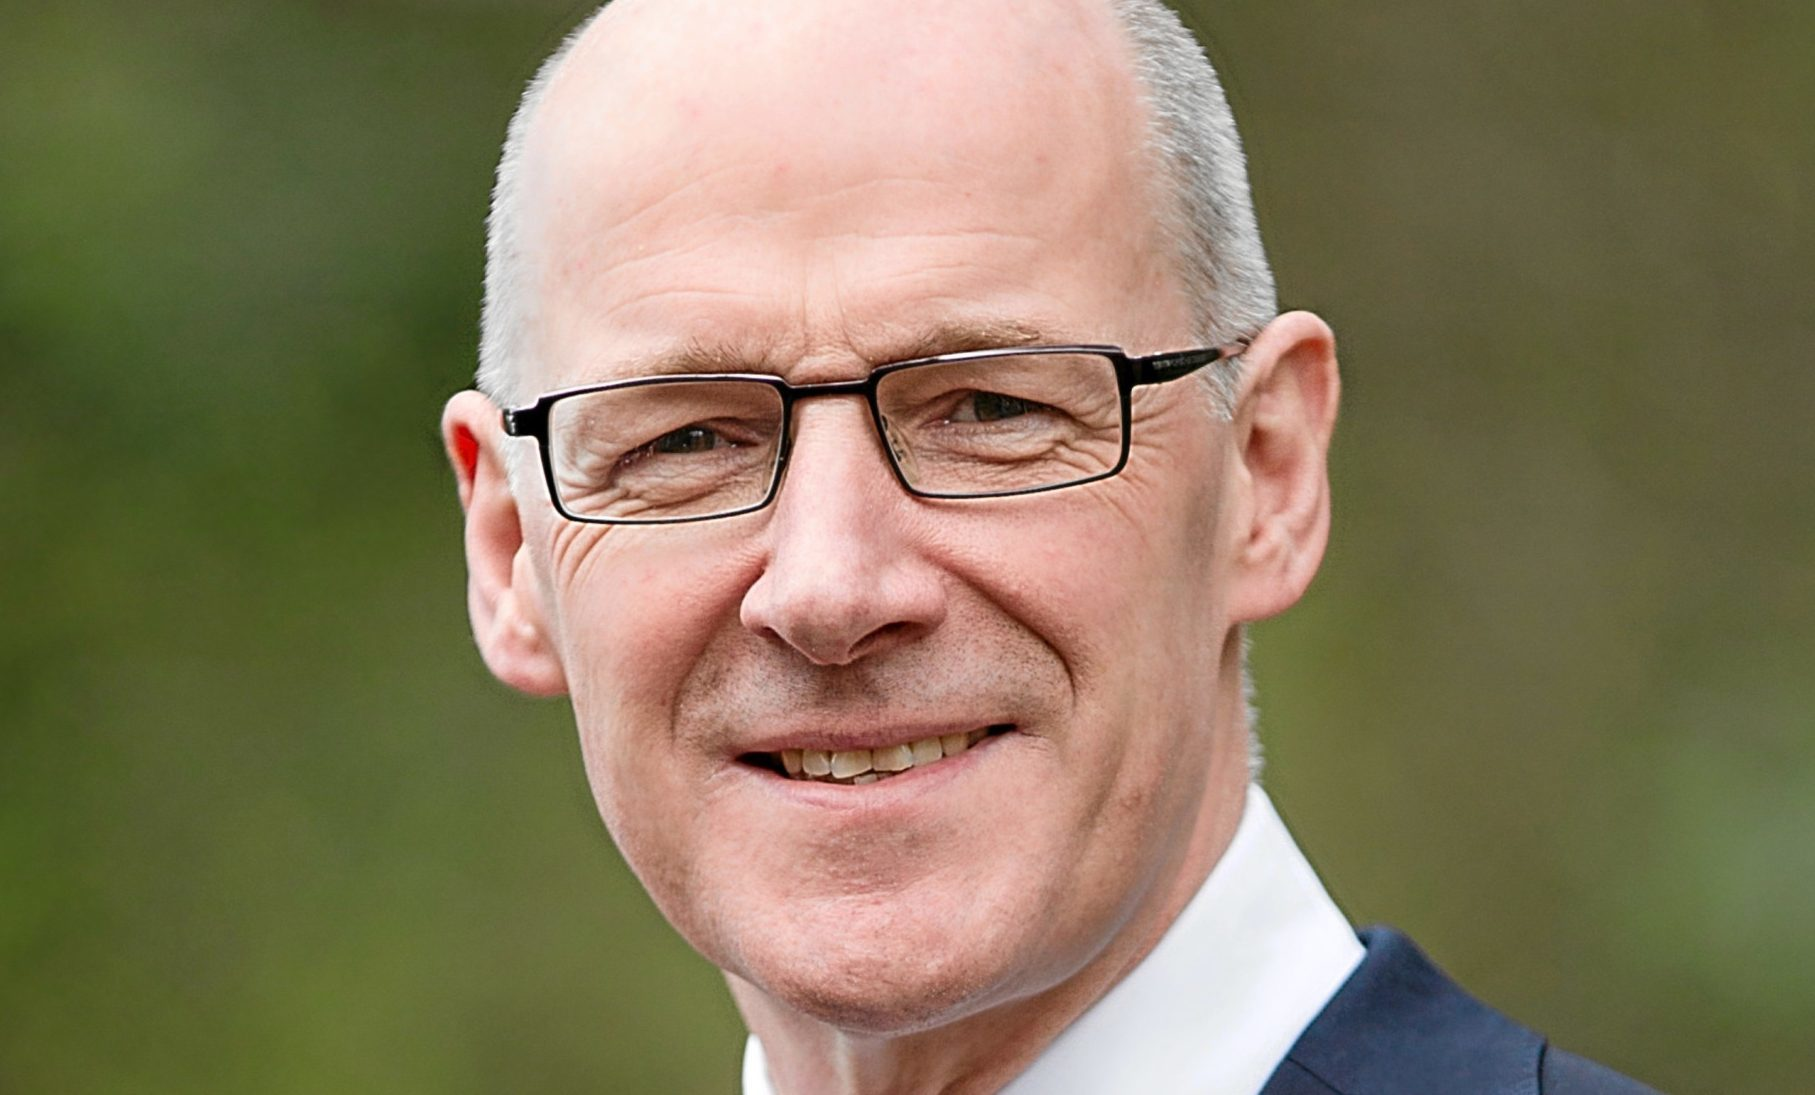 John Swinney MSP helped Perth Autism Support secure emergency funding